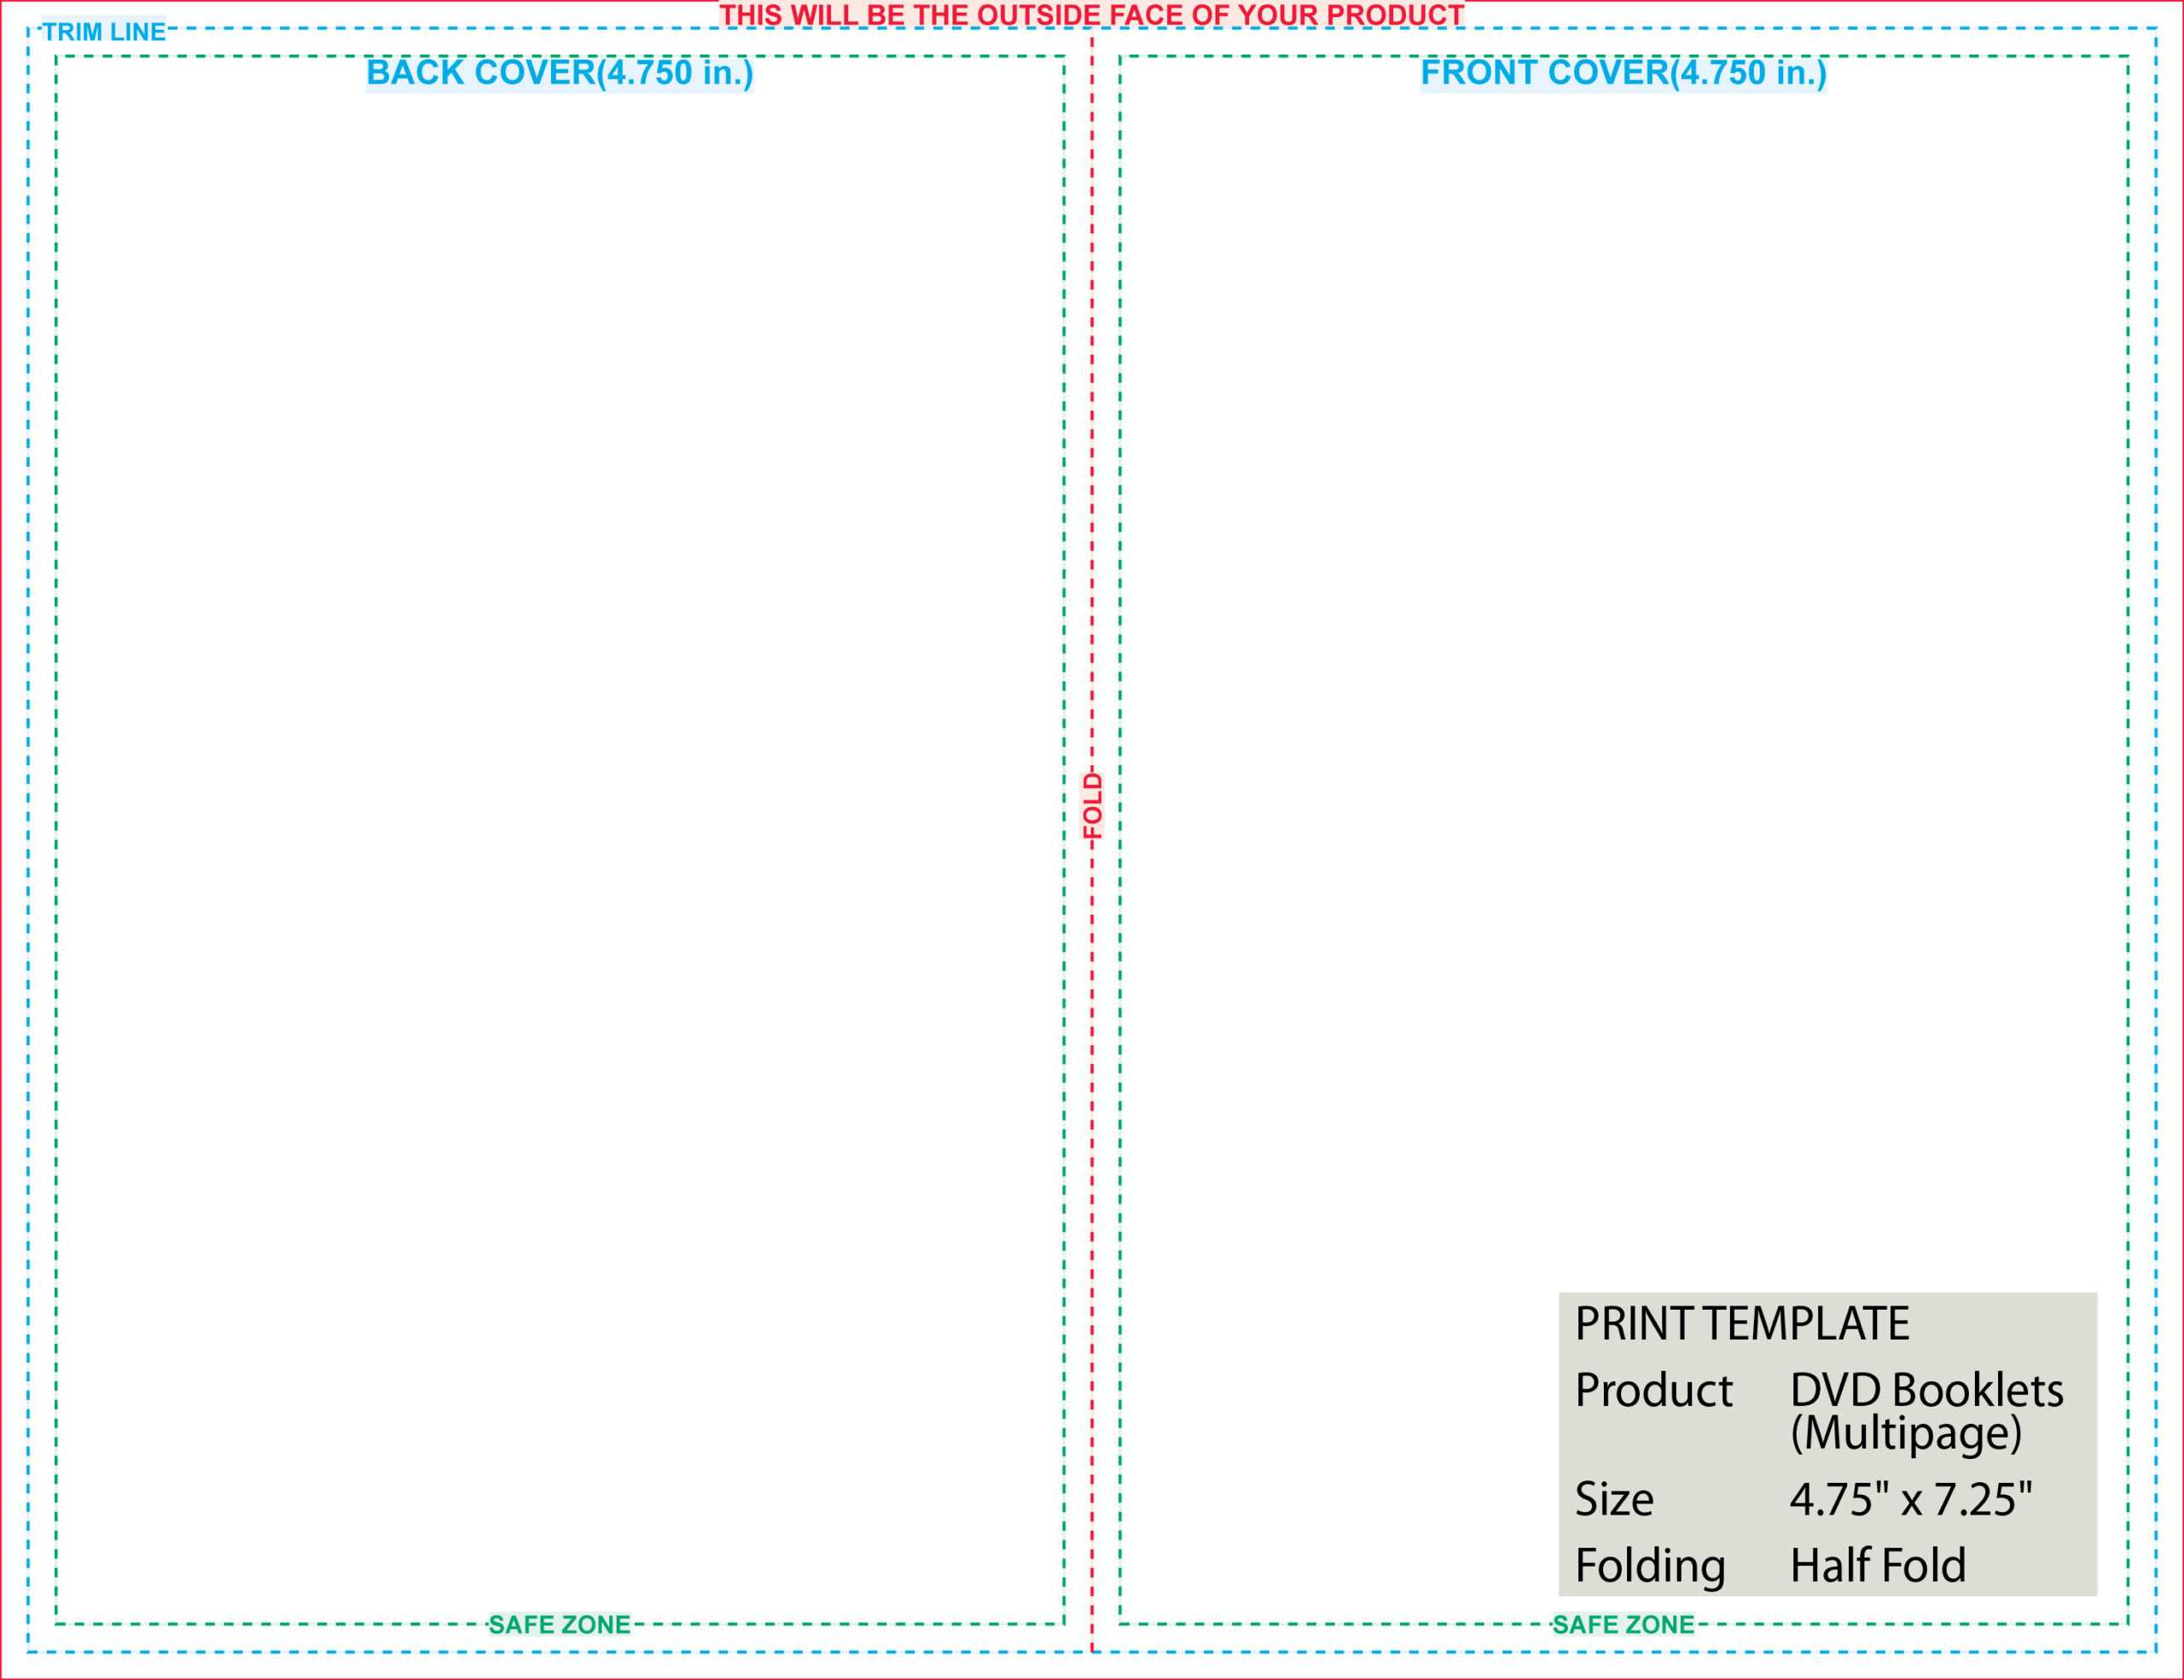 Stupendous Quarter Fold Card Template Photoshop Ideas Pertaining To Half Fold Greeting Card Template Word